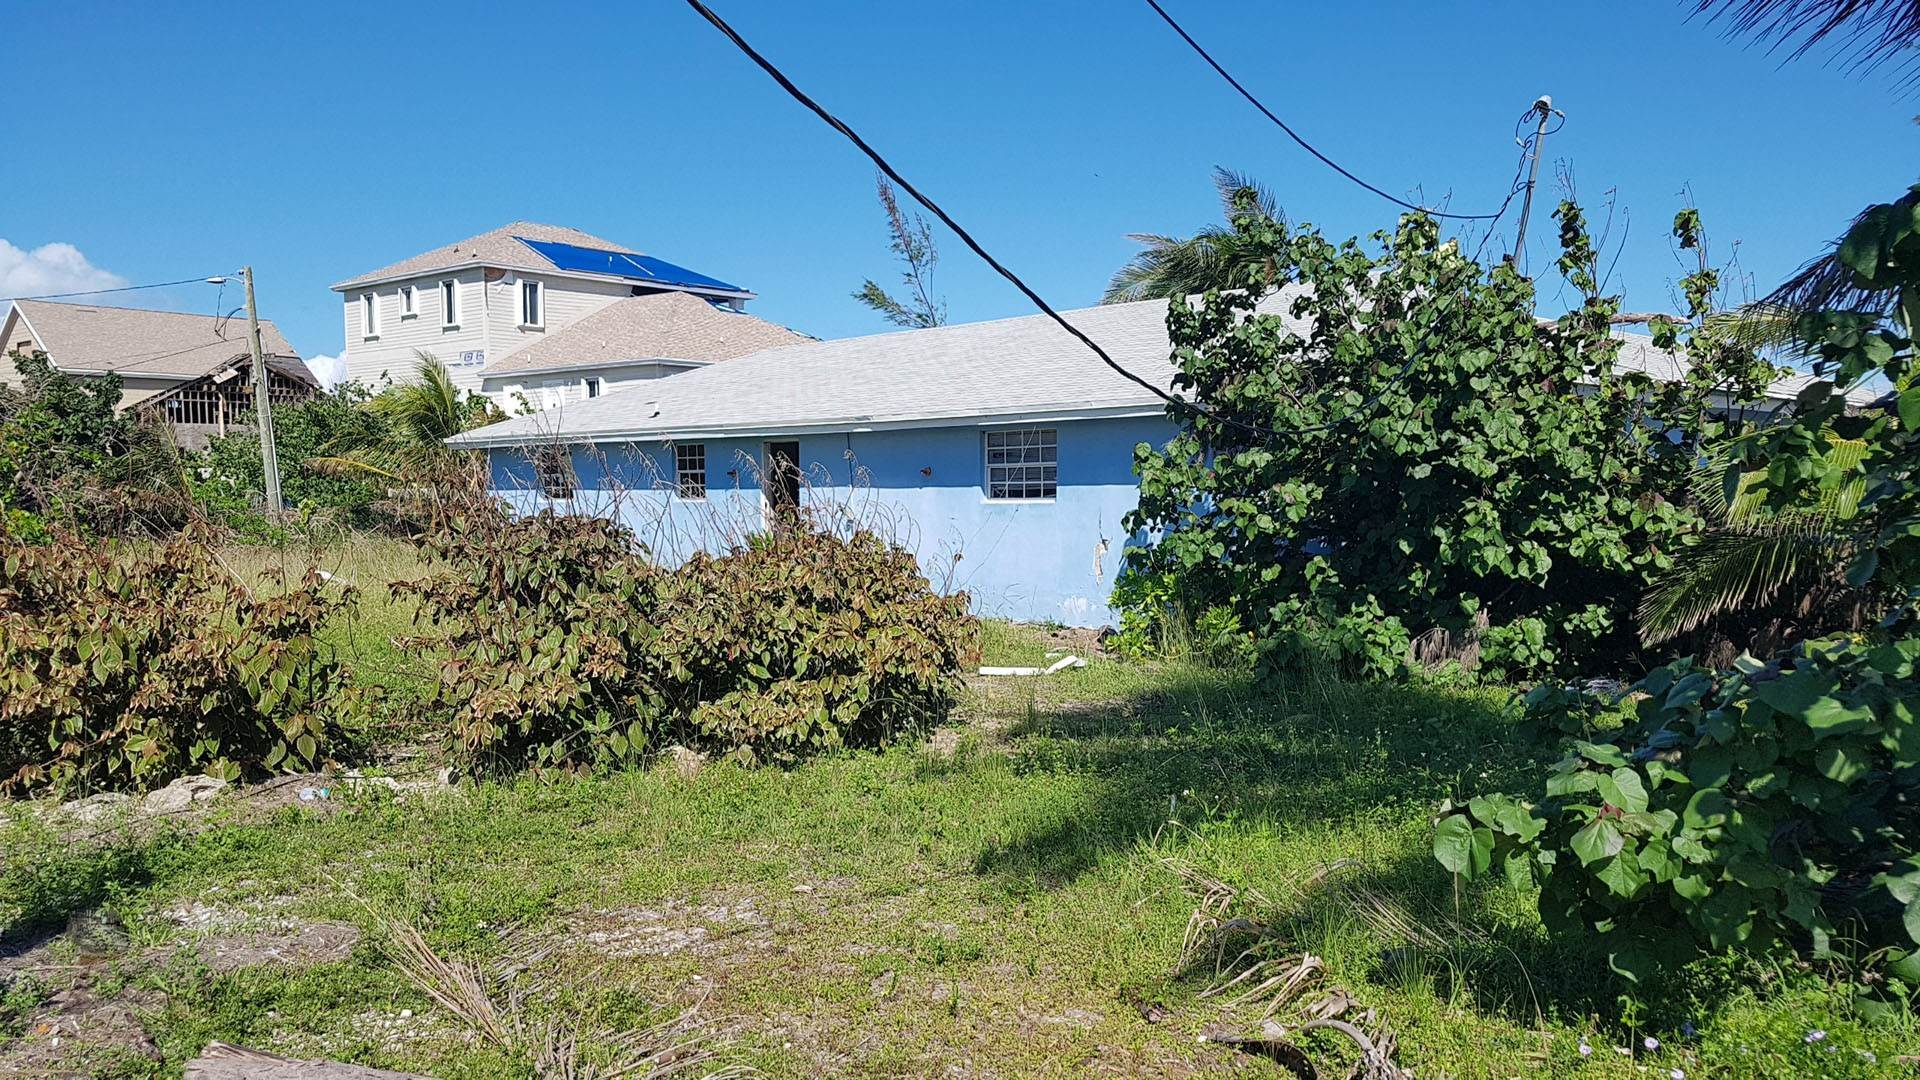 Single Family Homes por un Venta en Contractor's Special located in Coopers Town, Abaco Island - MLS 43317 Coopers Town, Abaco, Bahamas